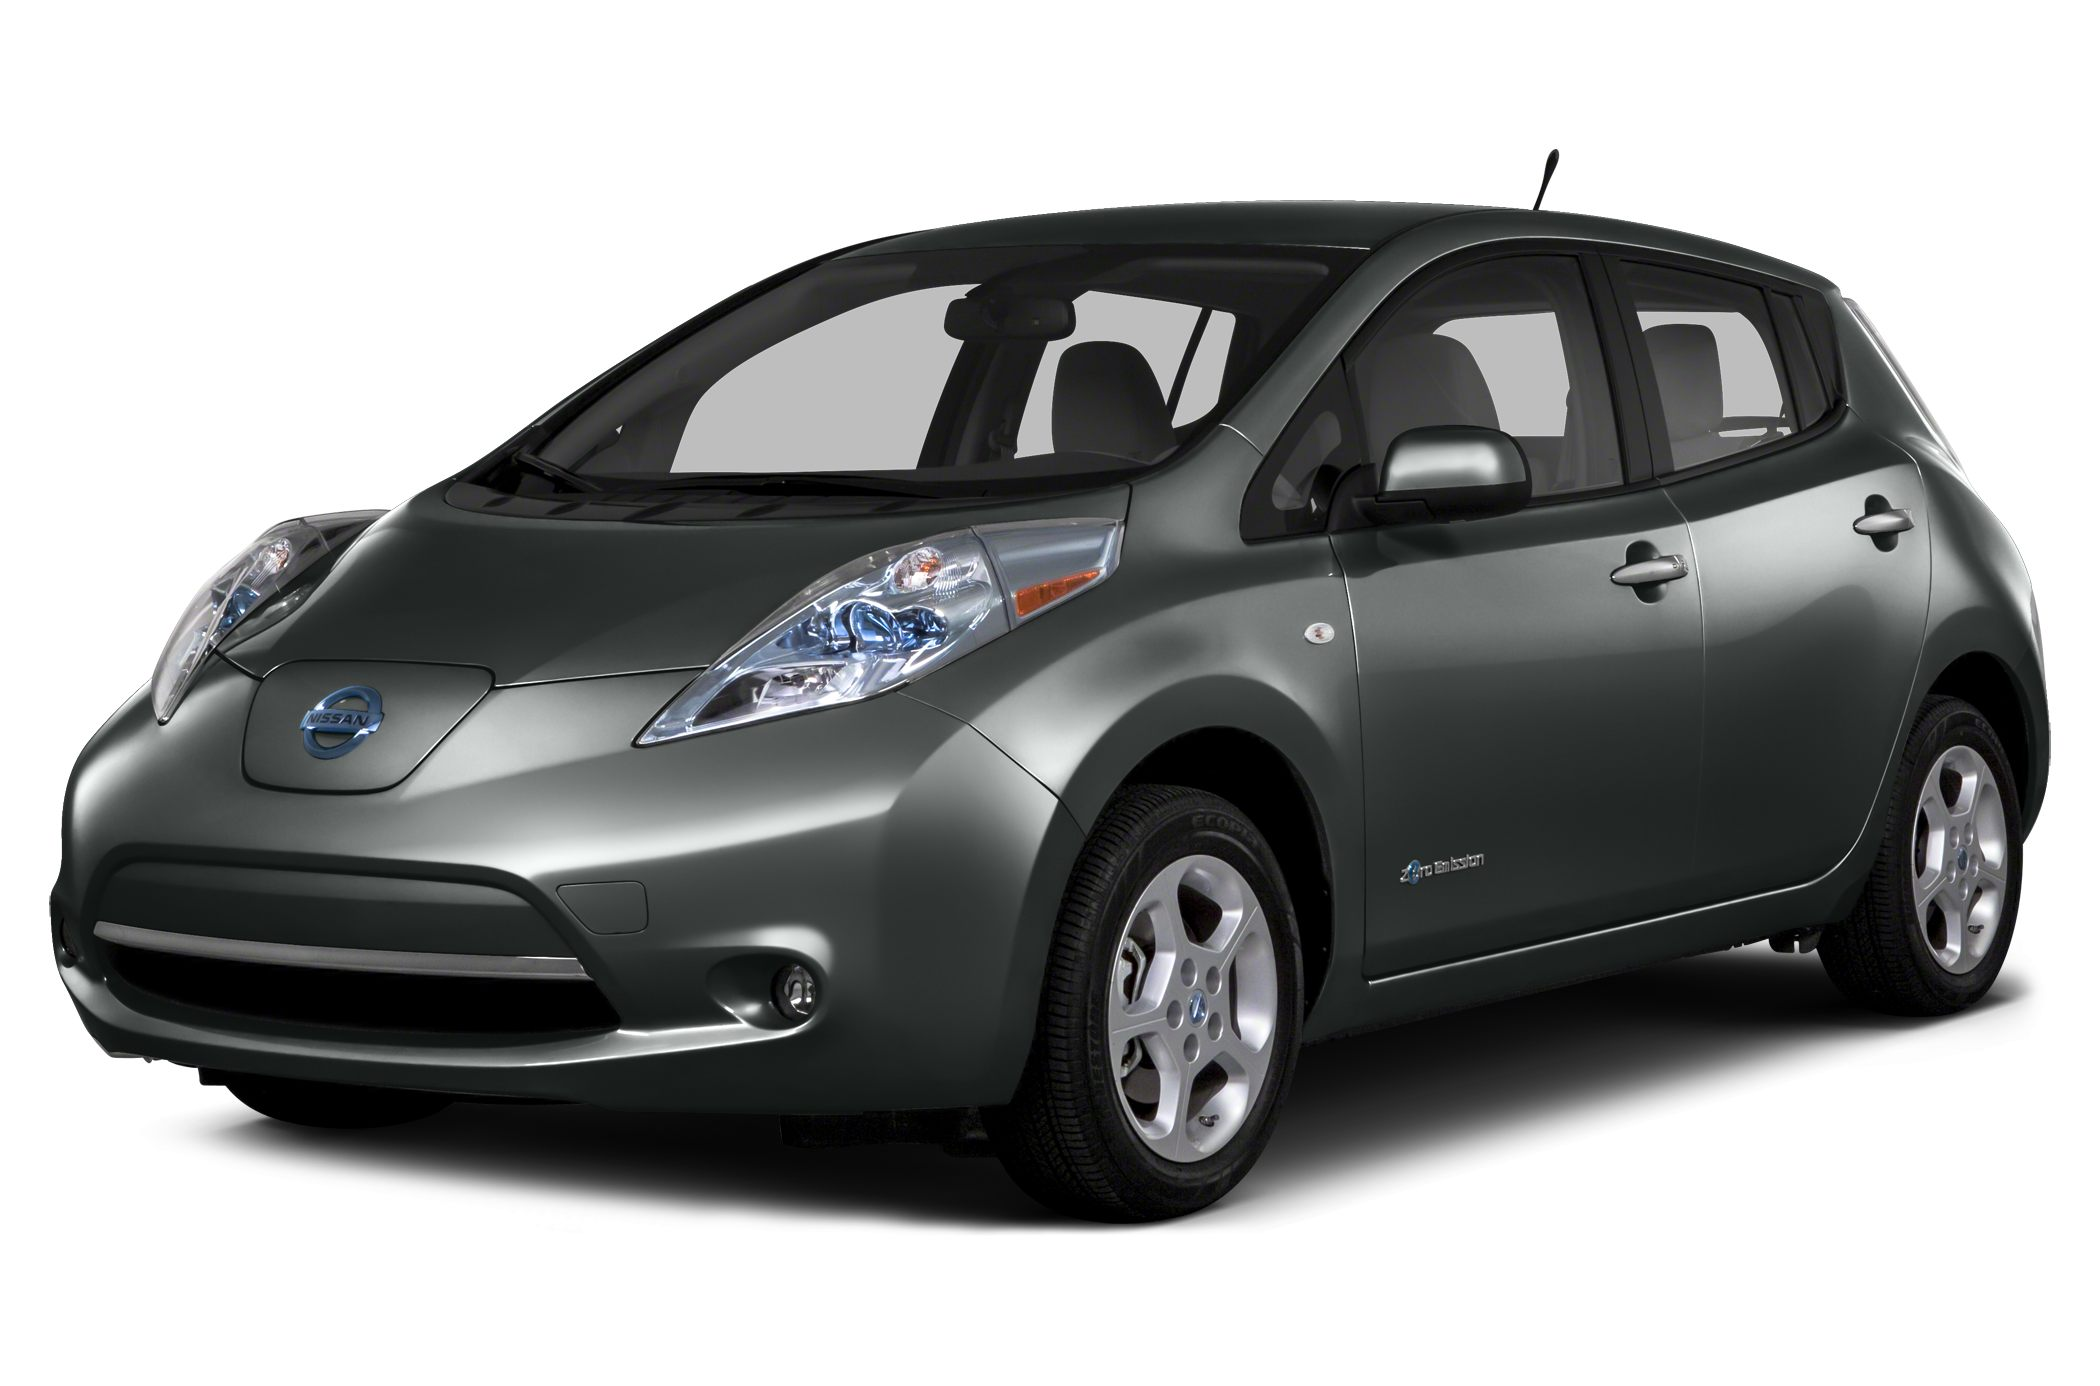 Next Nissan Motor Co Ltd (ADR) Leaf Will Increase Driving Range To 200 Miles